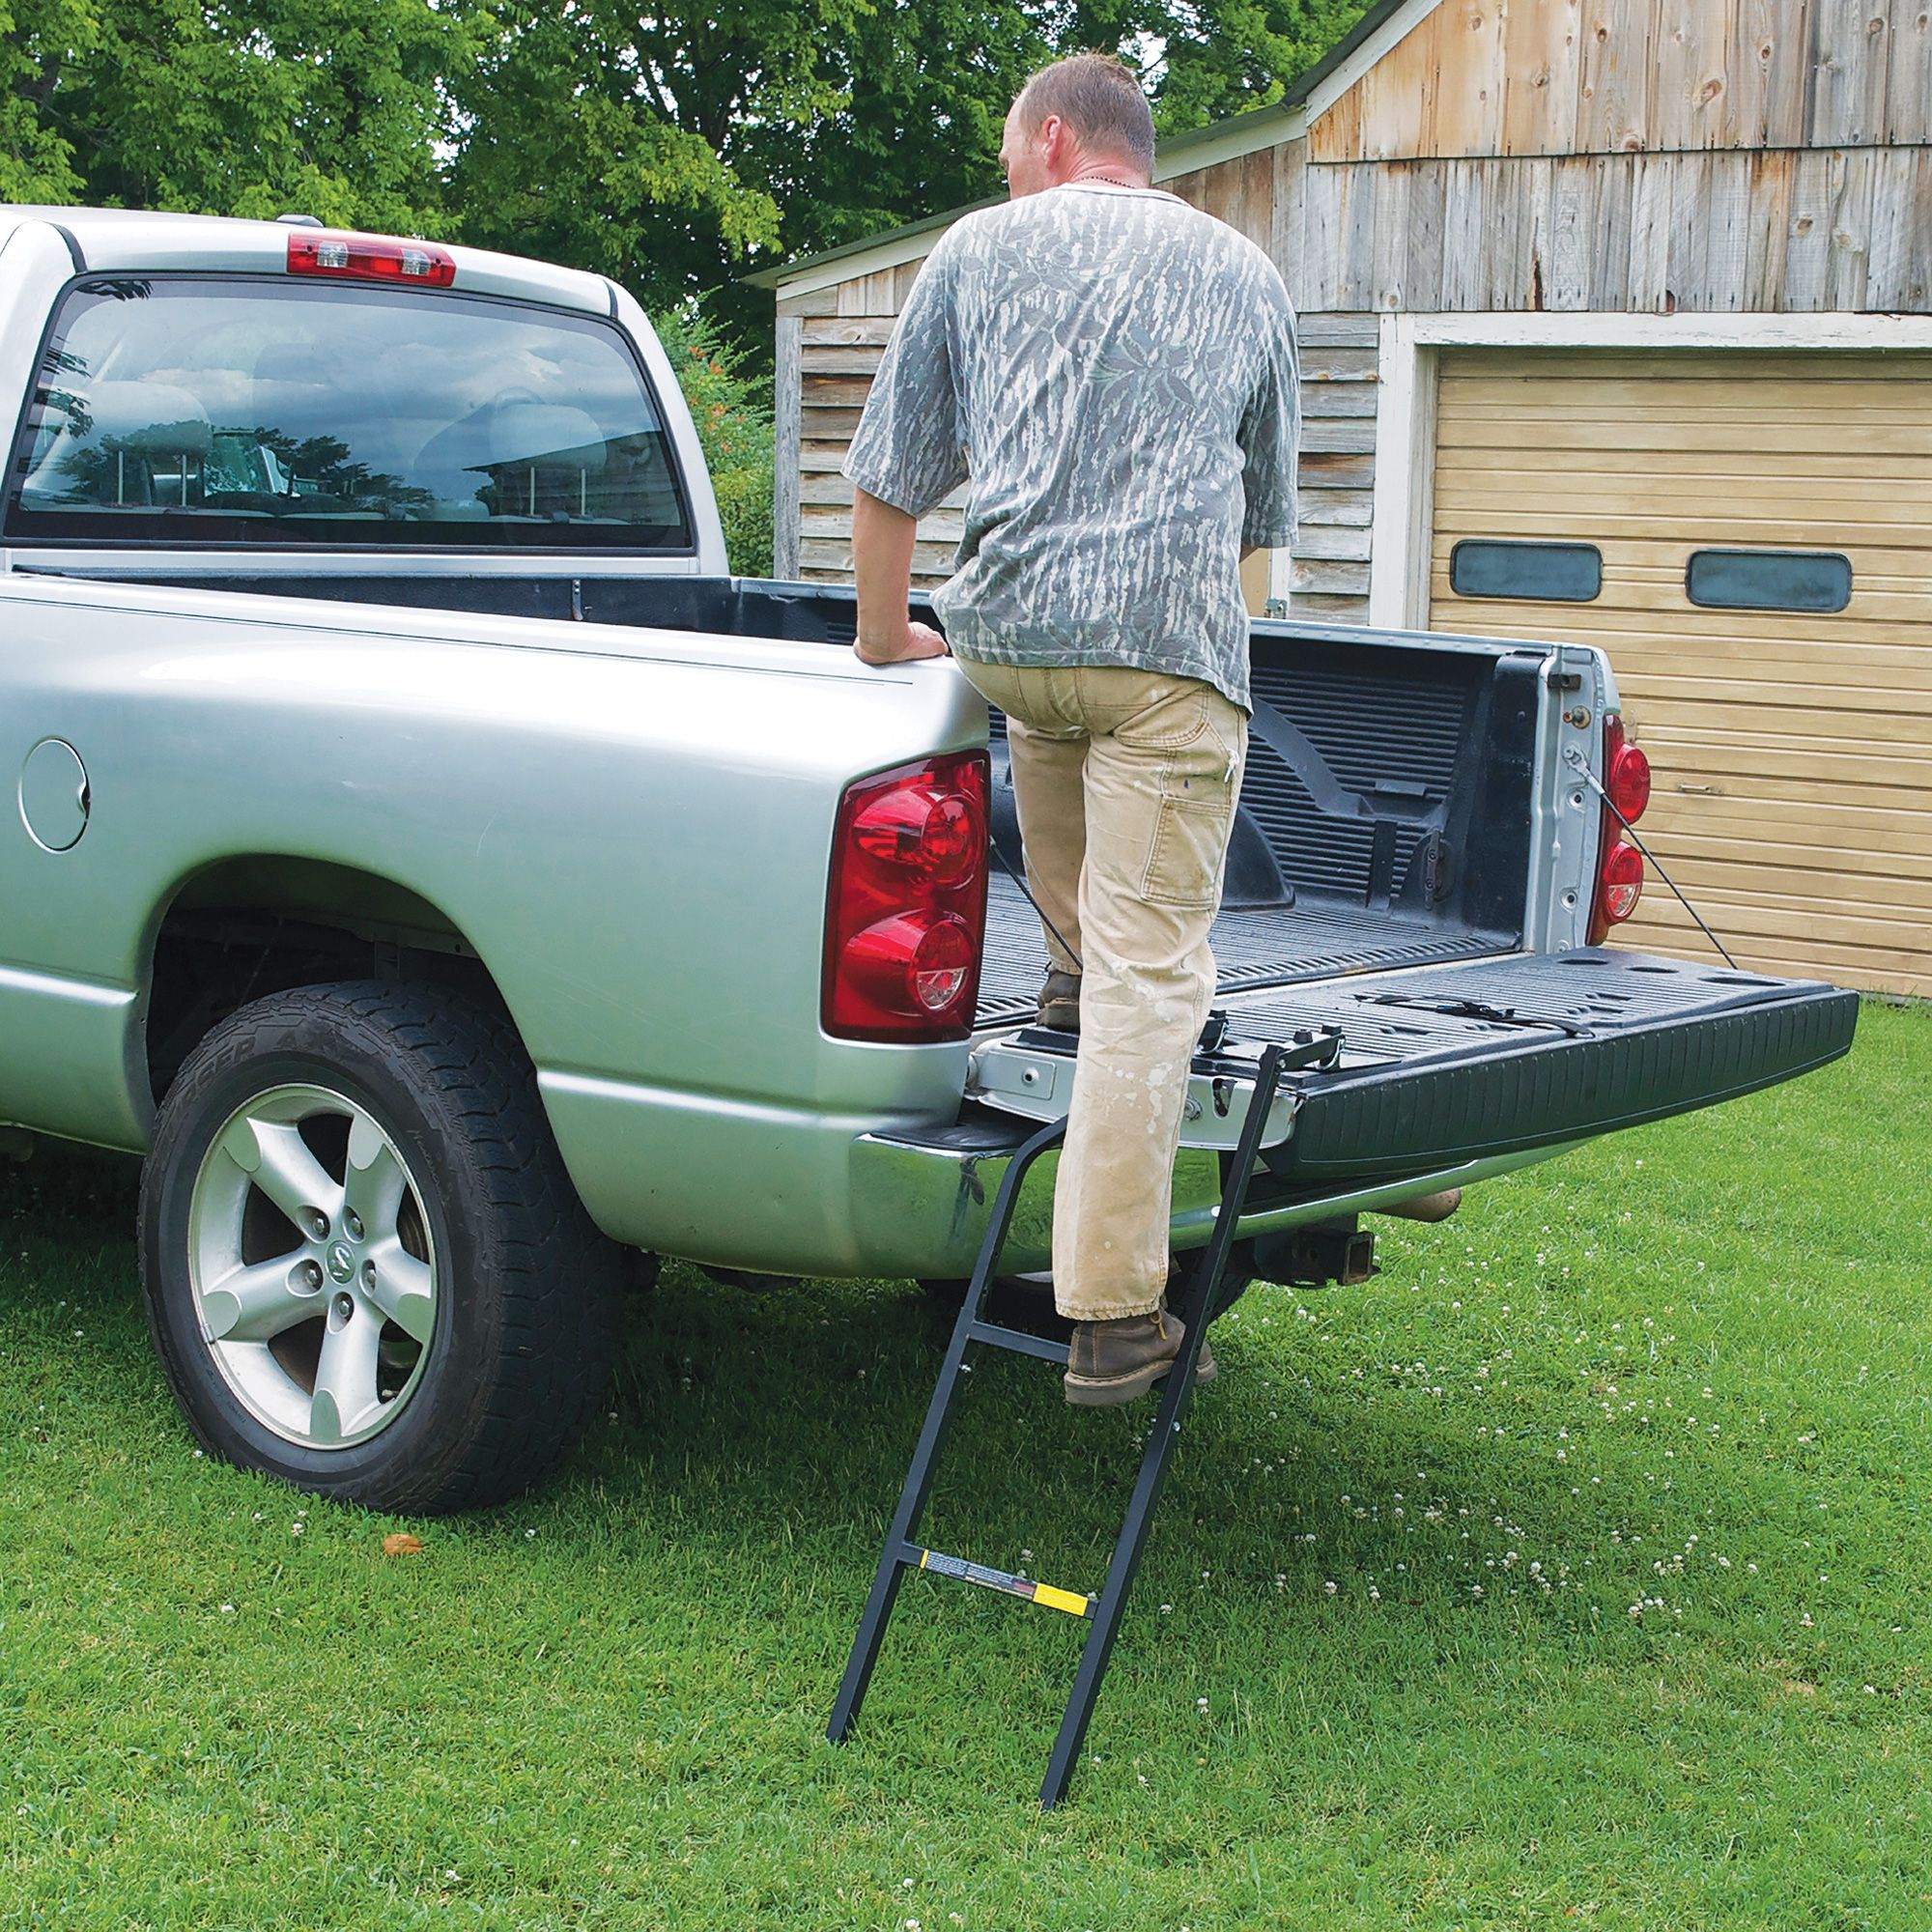 Traxion Tailgate Ladder, Model 100040 Truck tailgate